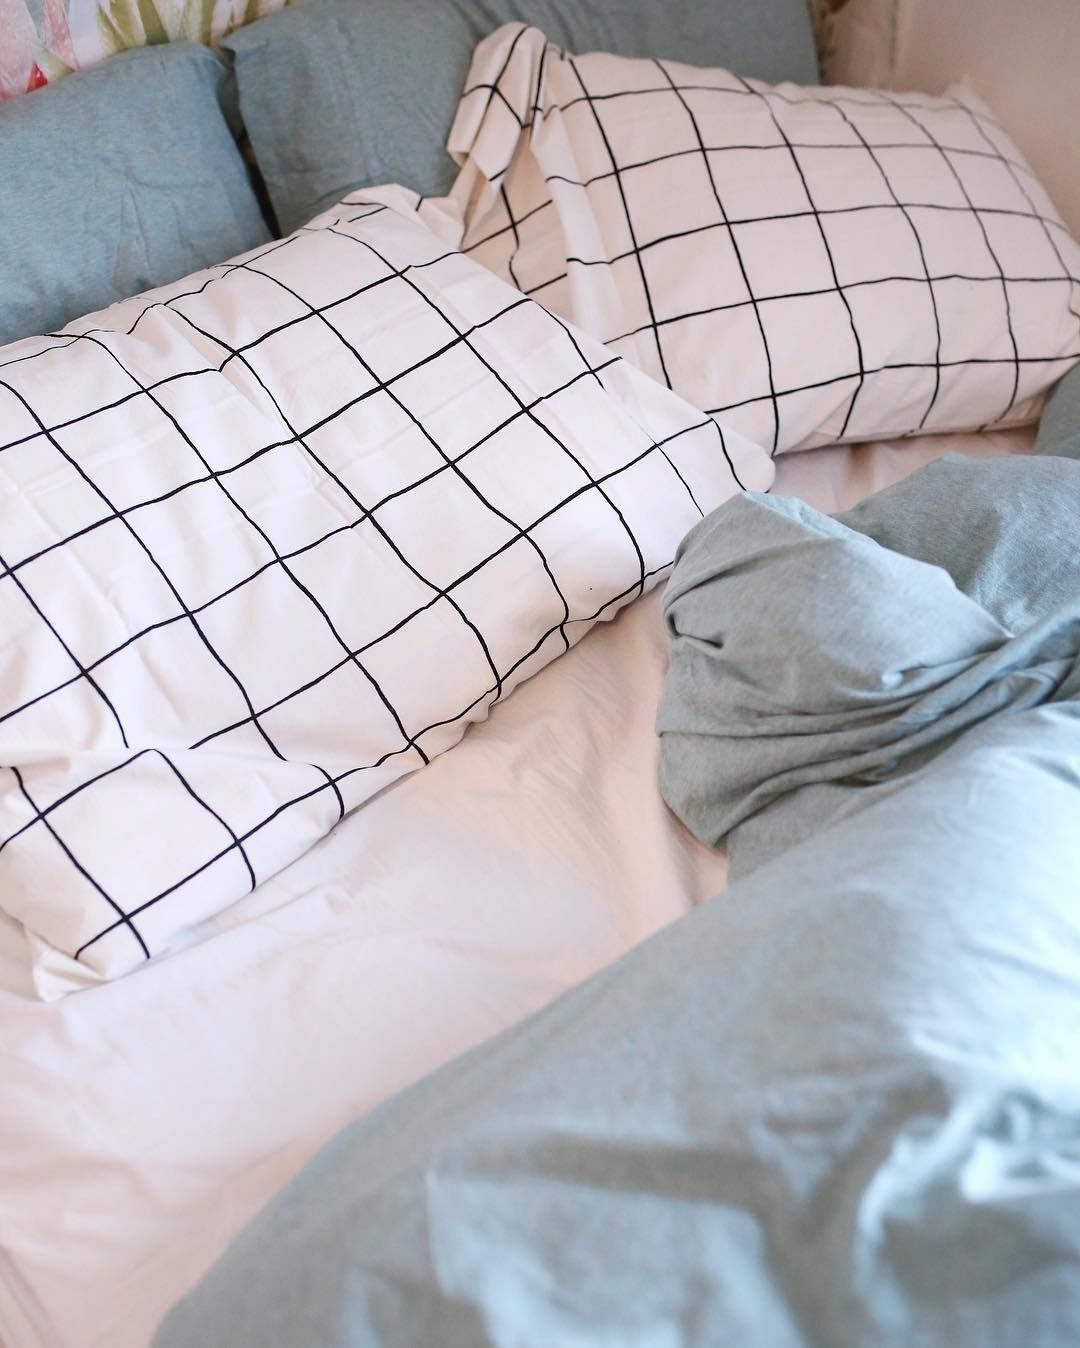 urban outfitters nyc uonewyork instagram photos and videos bedroom pinterest zuhause. Black Bedroom Furniture Sets. Home Design Ideas